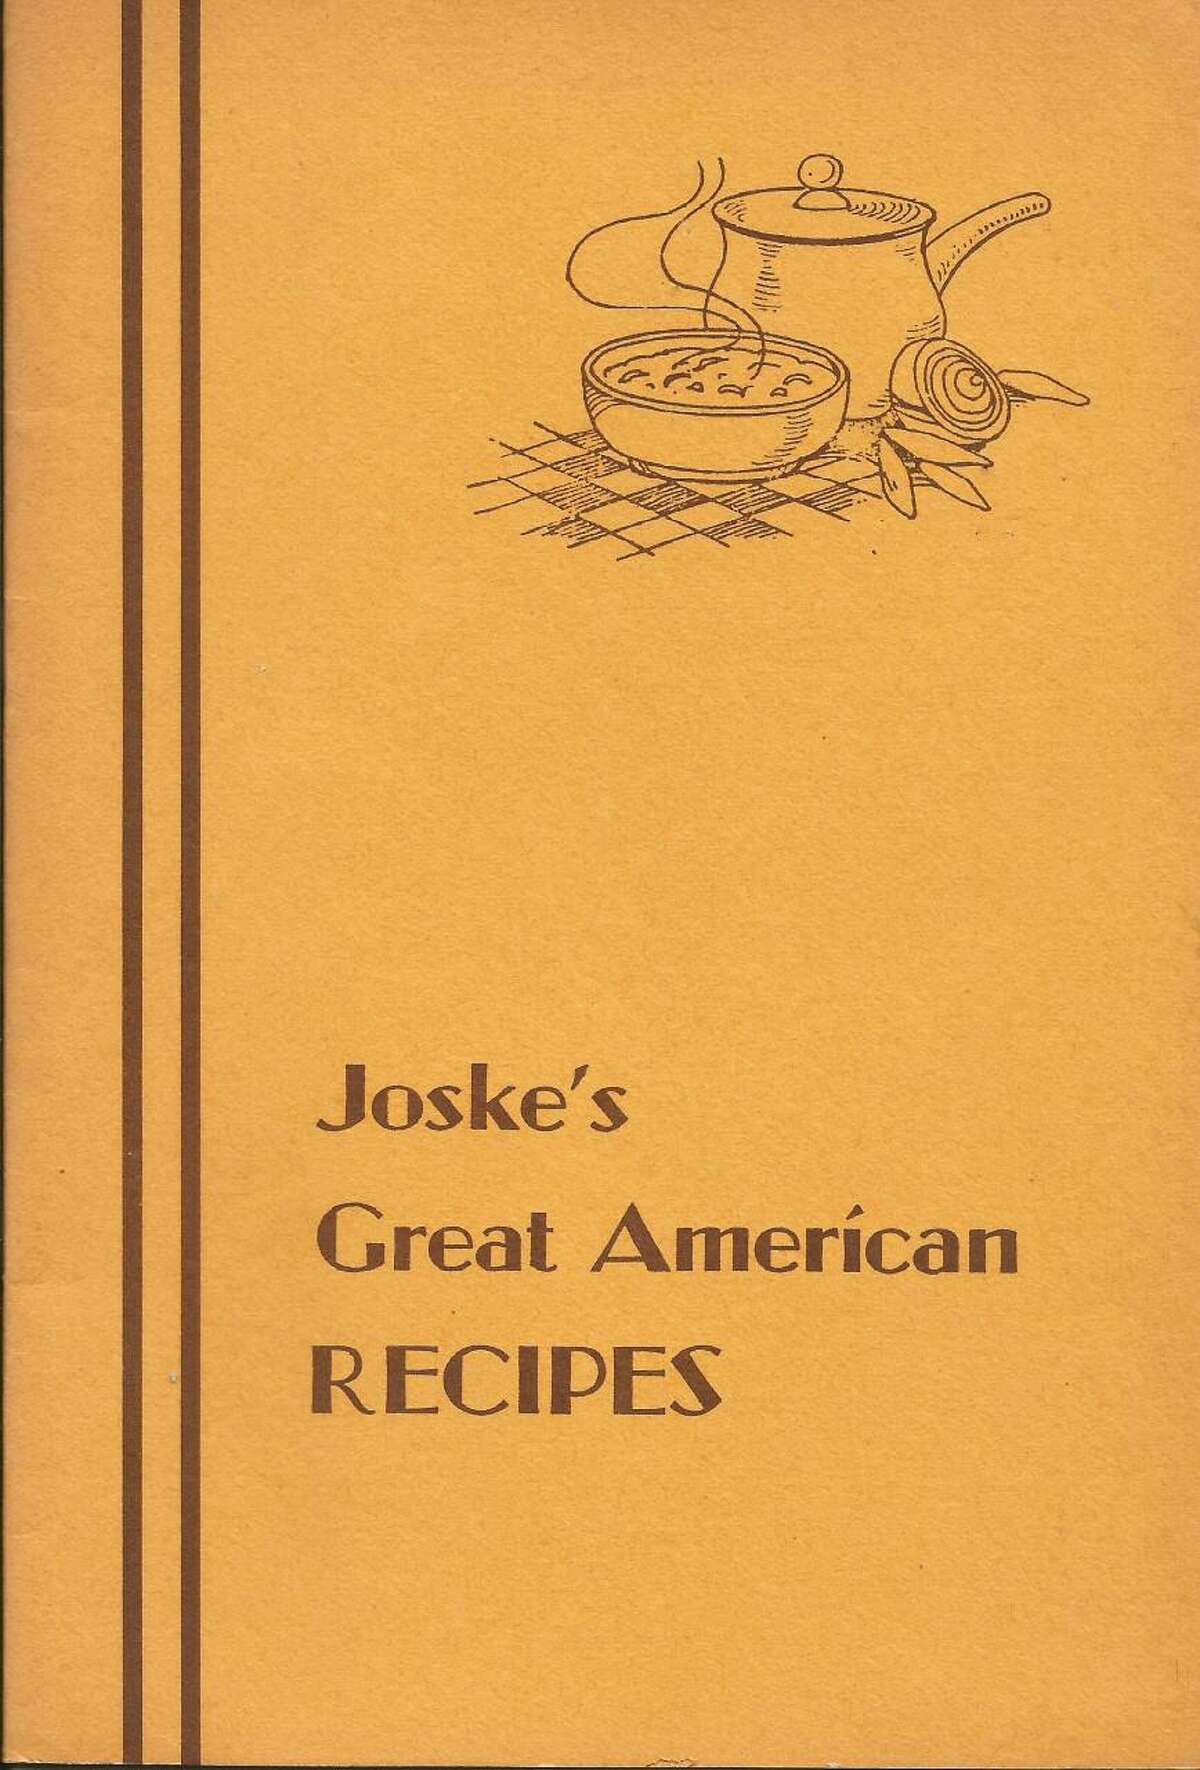 This photo shows the cover of a cookbook published by Joske's department store. Some speculate it may have been published in the 1970s, but it is undated and little is known about it. Joske's flagship store stood in downtown San Antonio on Alamo Plaza from 1888 until it closed in 1987.